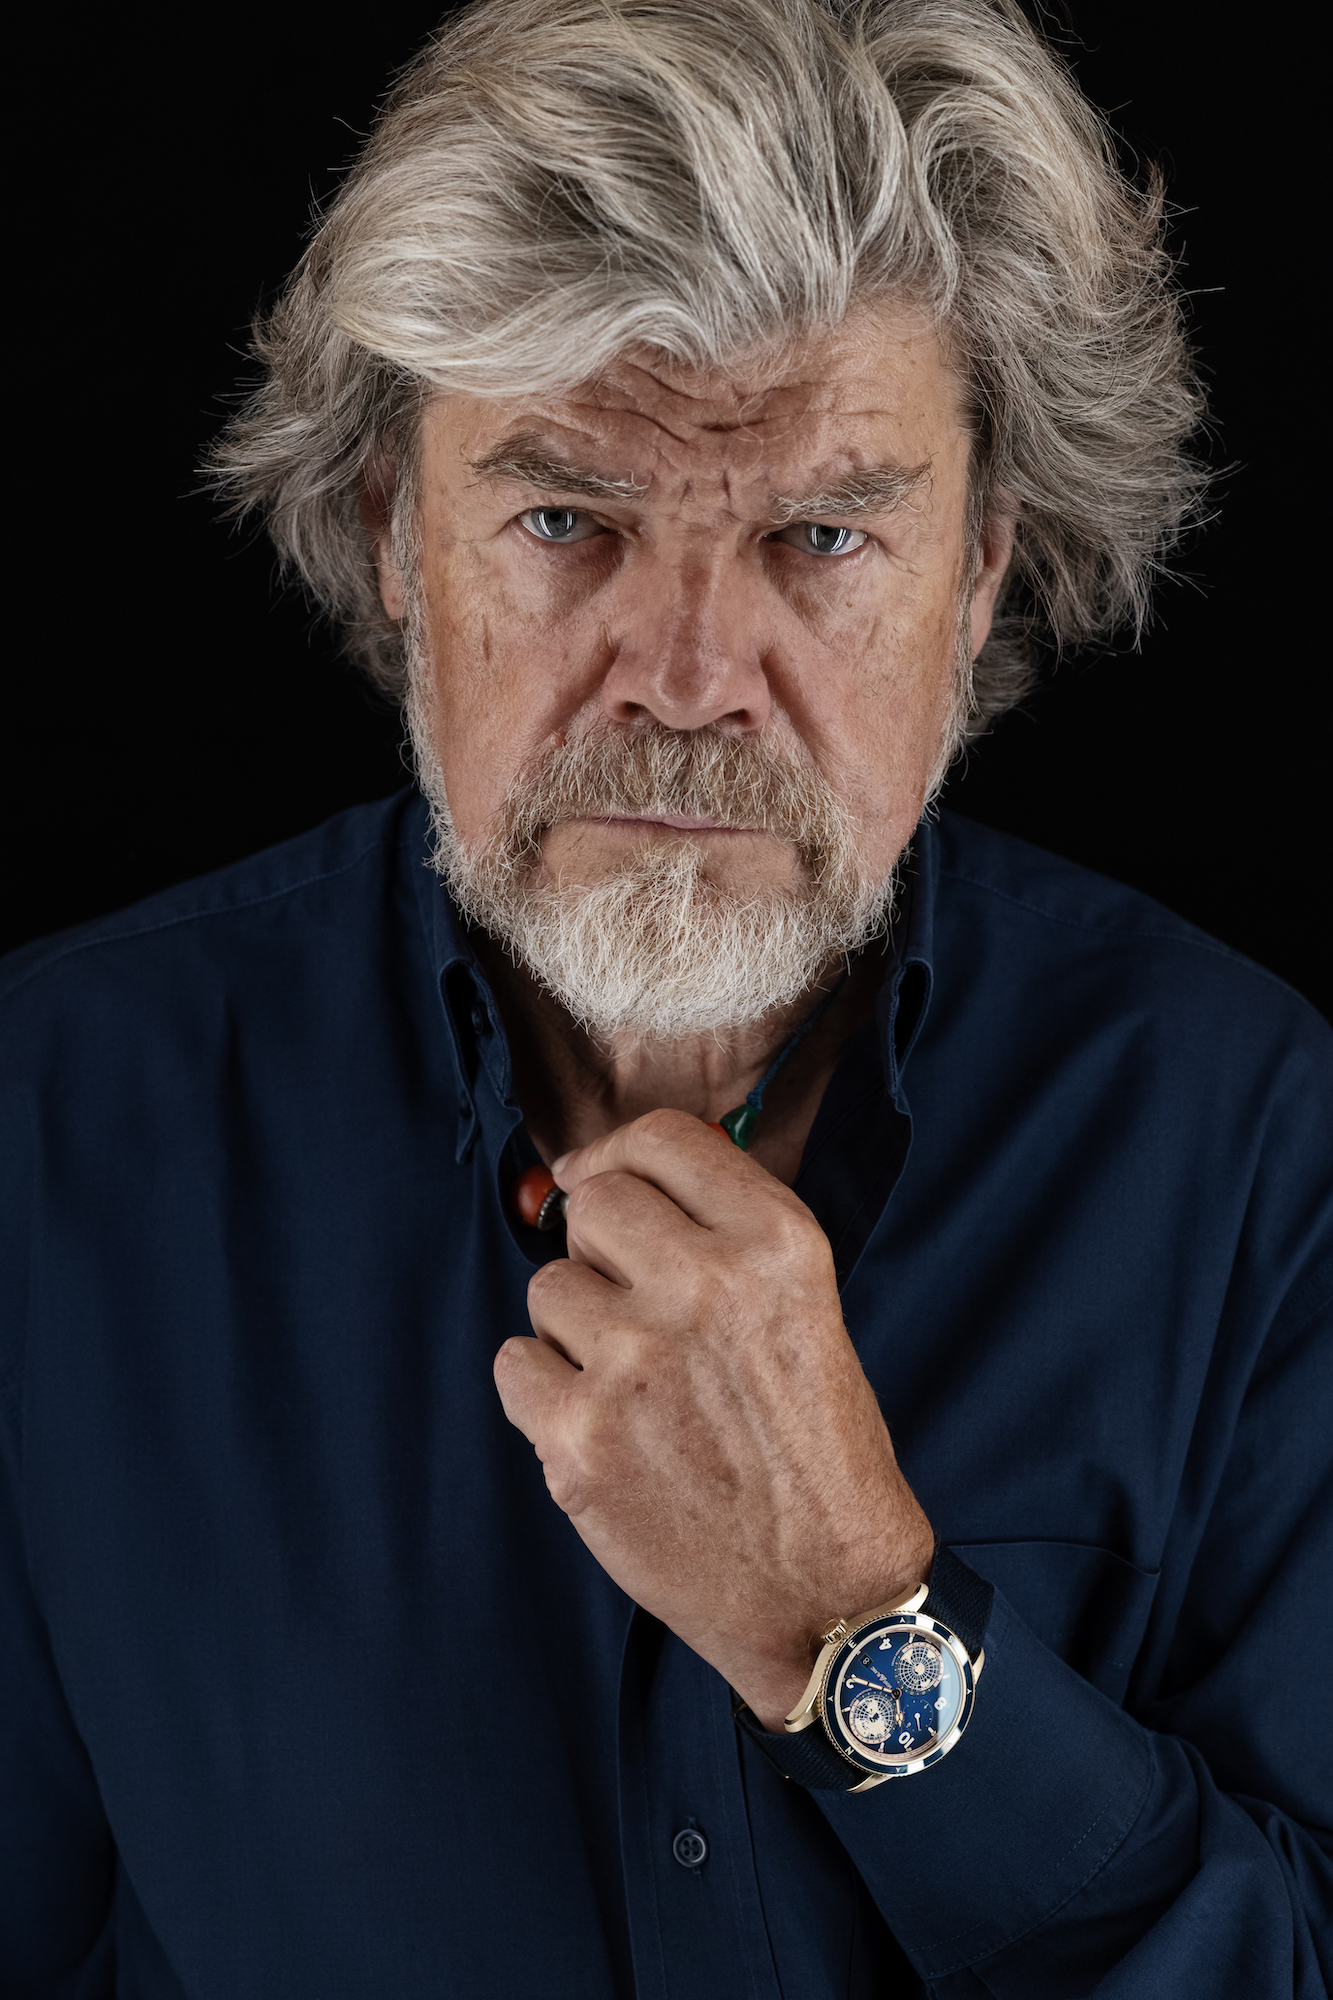 Montblanc 1858 Geosphere Messner Limited Edition 262 pieces - Reinhold Messner lifestyle